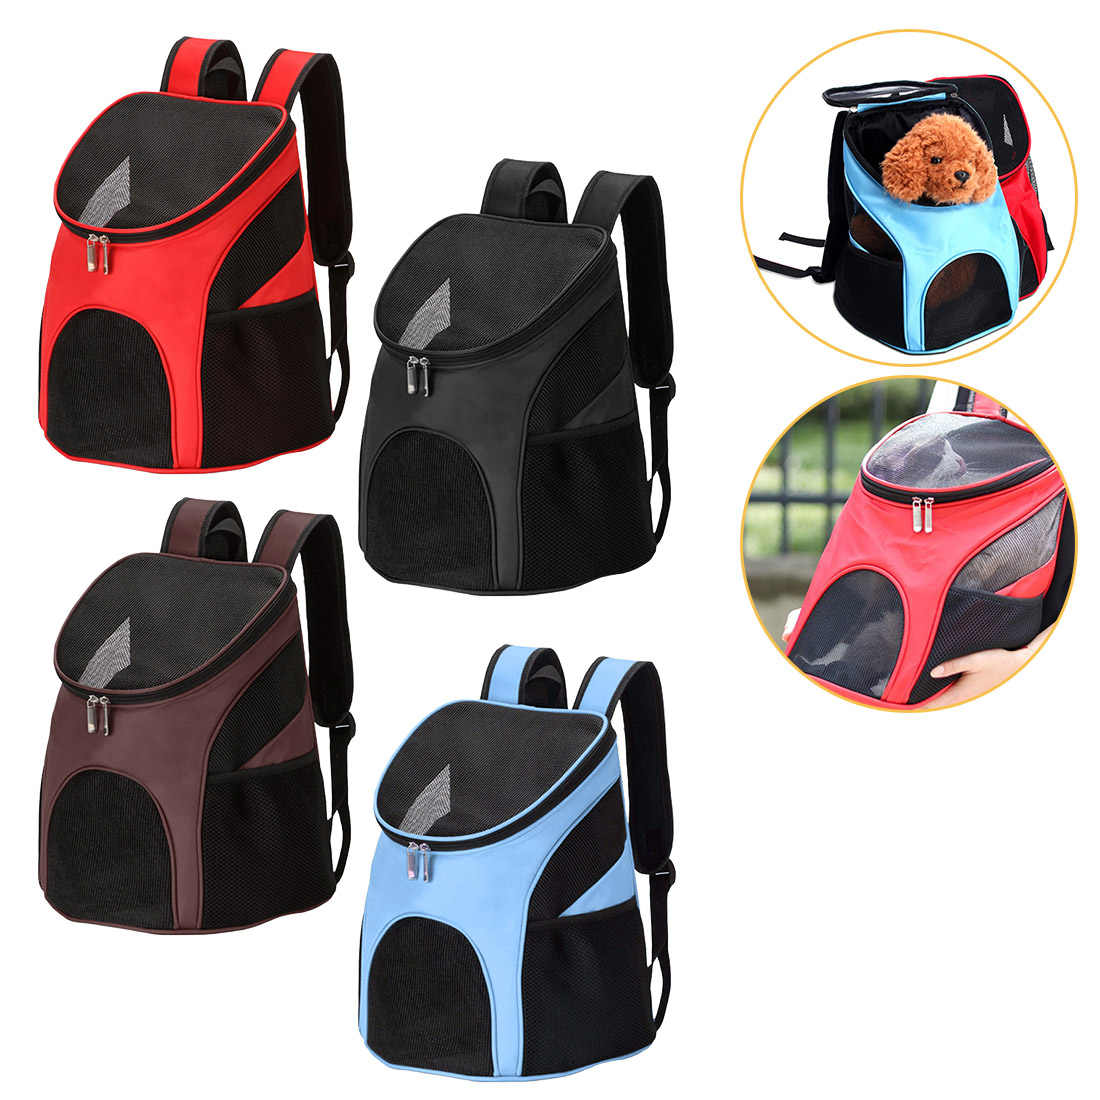 2019 New Pet Dog Carrier Mesh Backpack Outdoor Travel Products Breathable Shoulder Handle Bags for Small Dog Cat Chihuahua